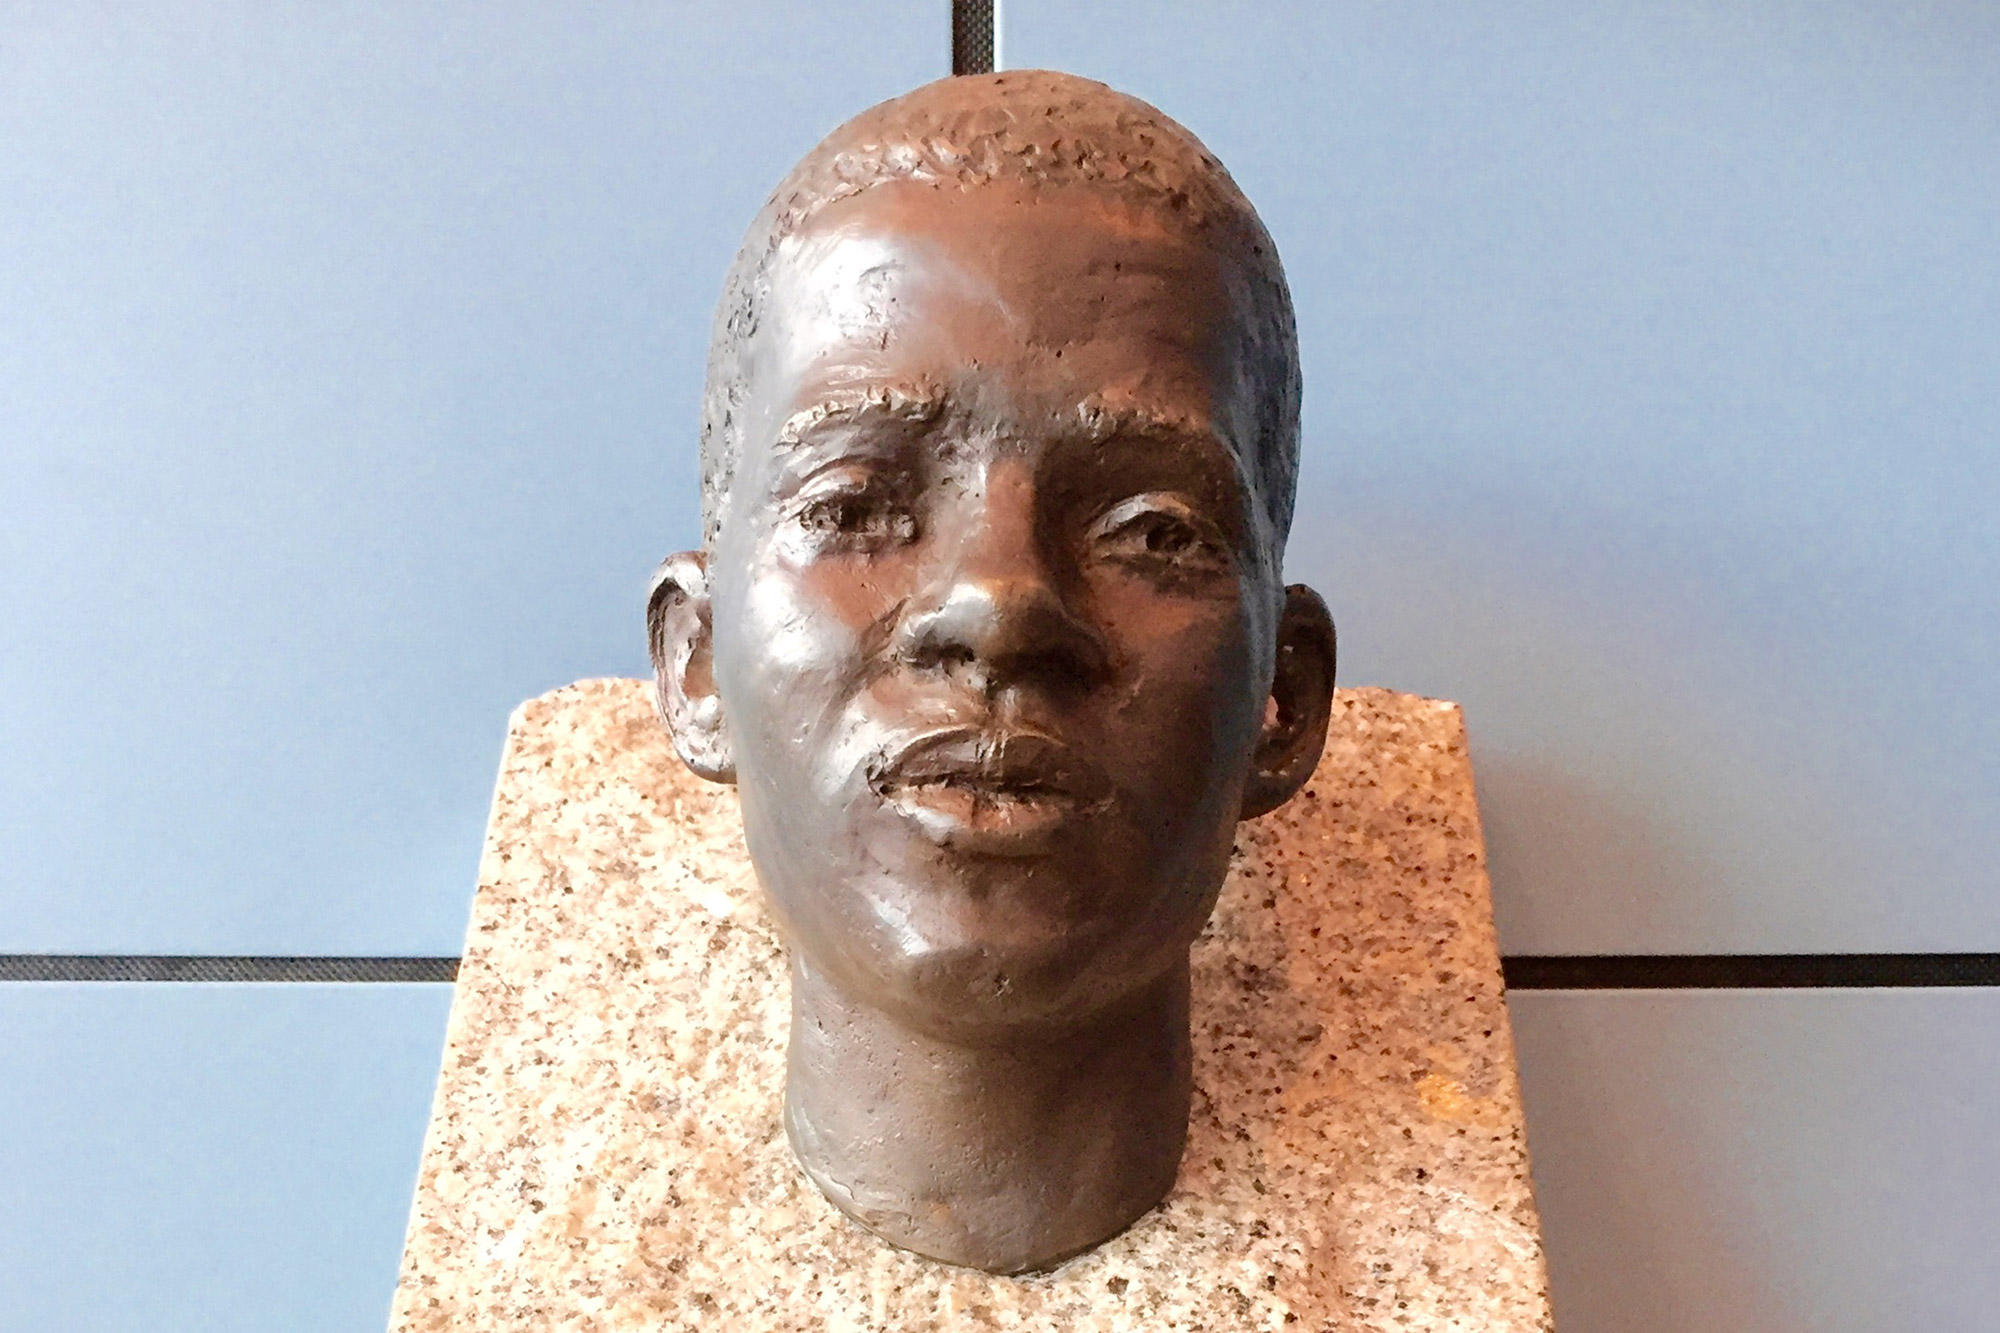 30 August 2016: The Benjamin Prize, a bust by Ivar Sjaastad, is awarded each year to a school that excels in its work to combat racism and discrimination. Benjamin's mother, teacher Marit Hermansen, was a member of the judging committee until her death in 2019. (Photograph by Kuben yrkesarena, Wikimedia Commons)